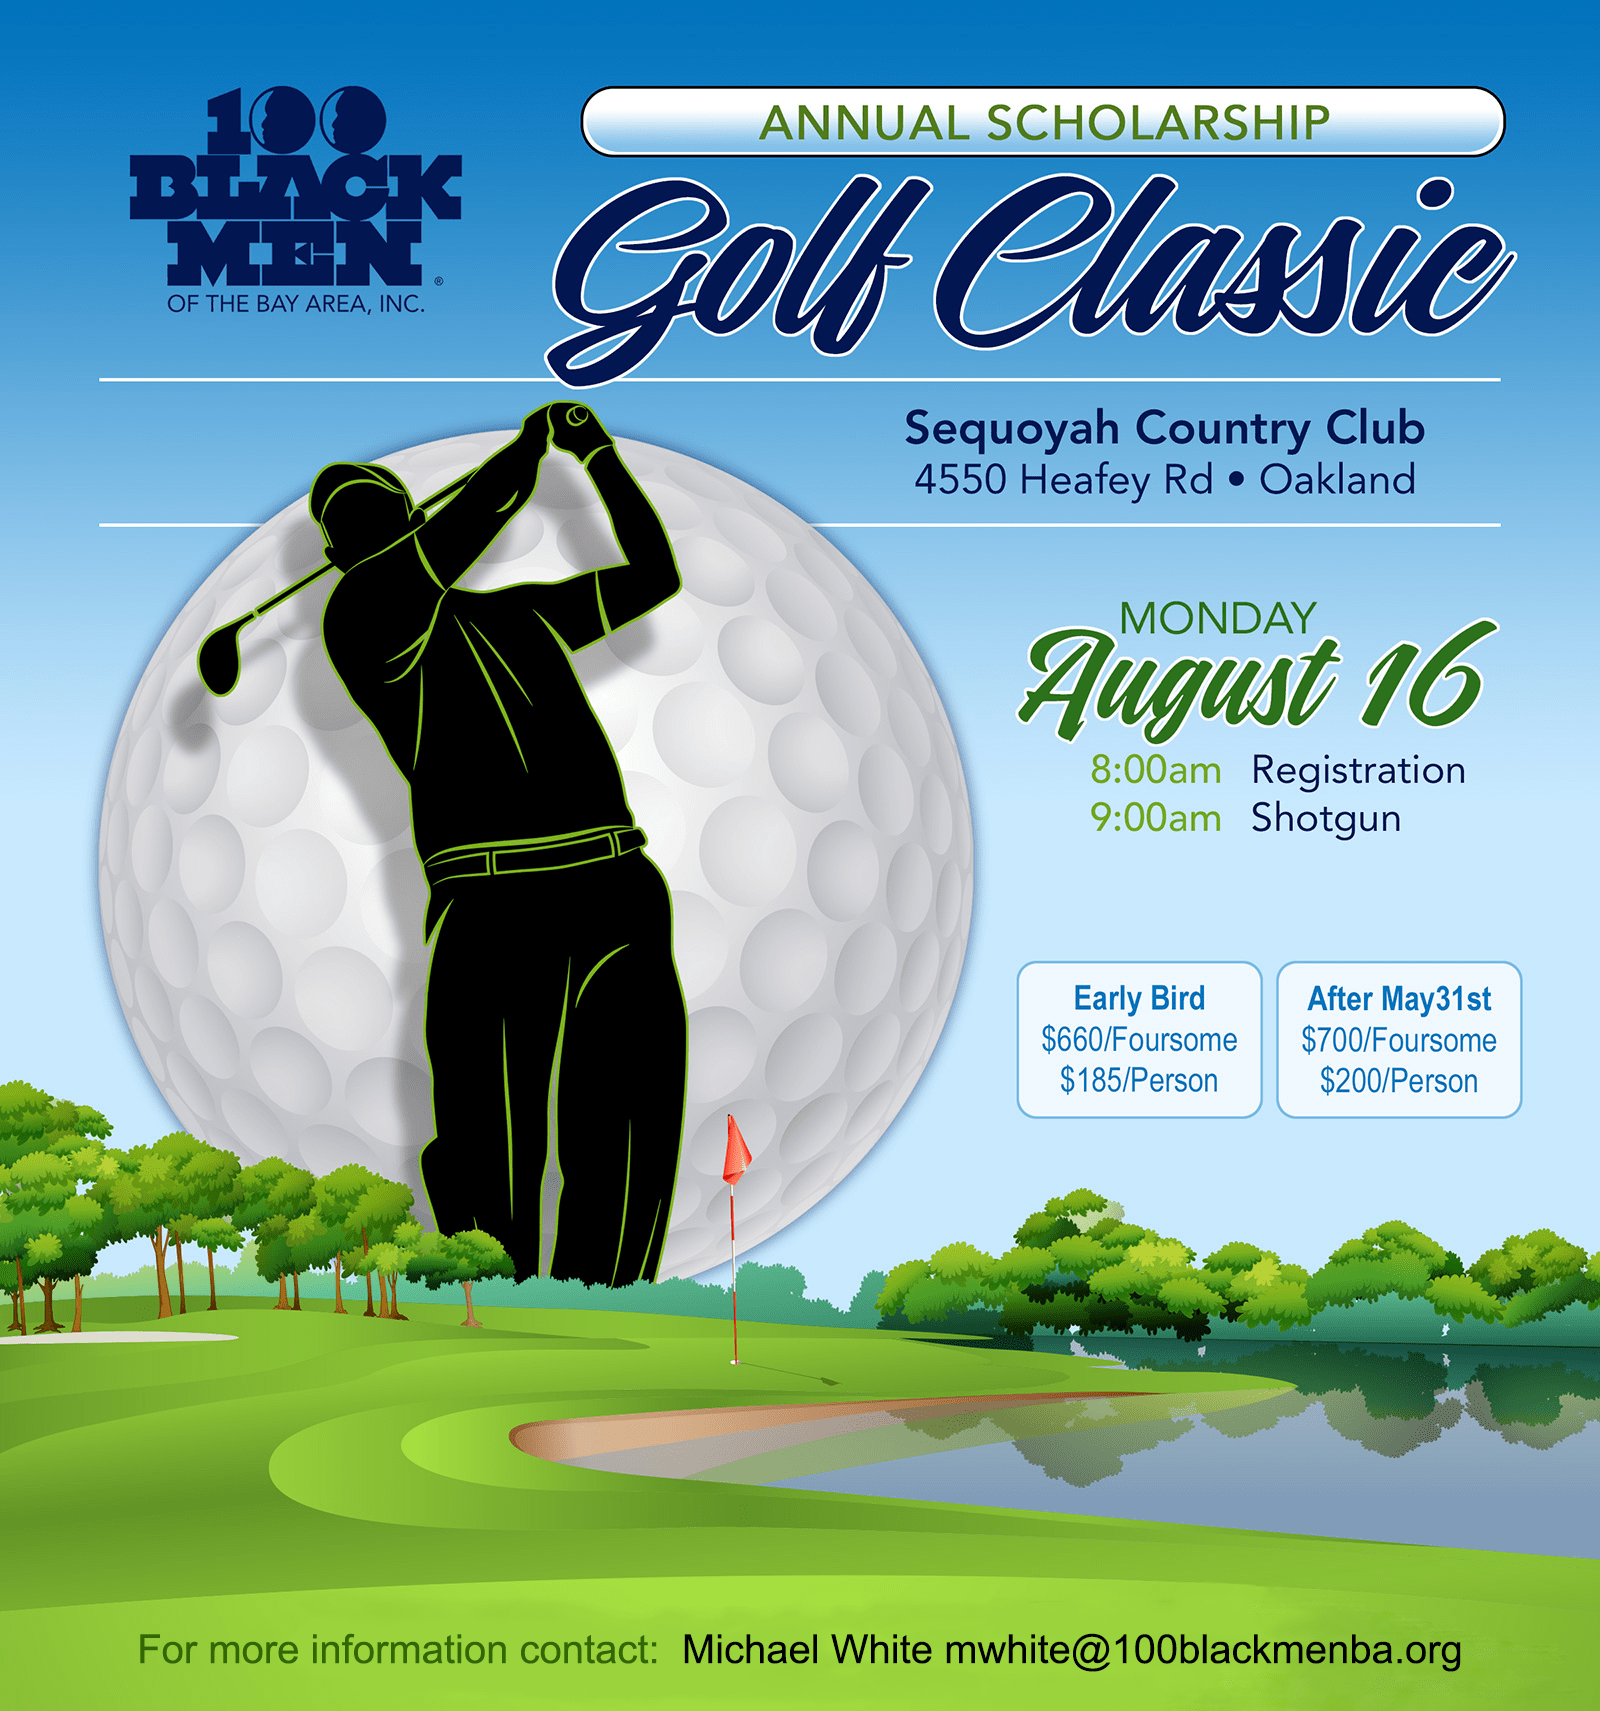 100 Black Men of the Bay Area's Annual Scholarship Golf Classic